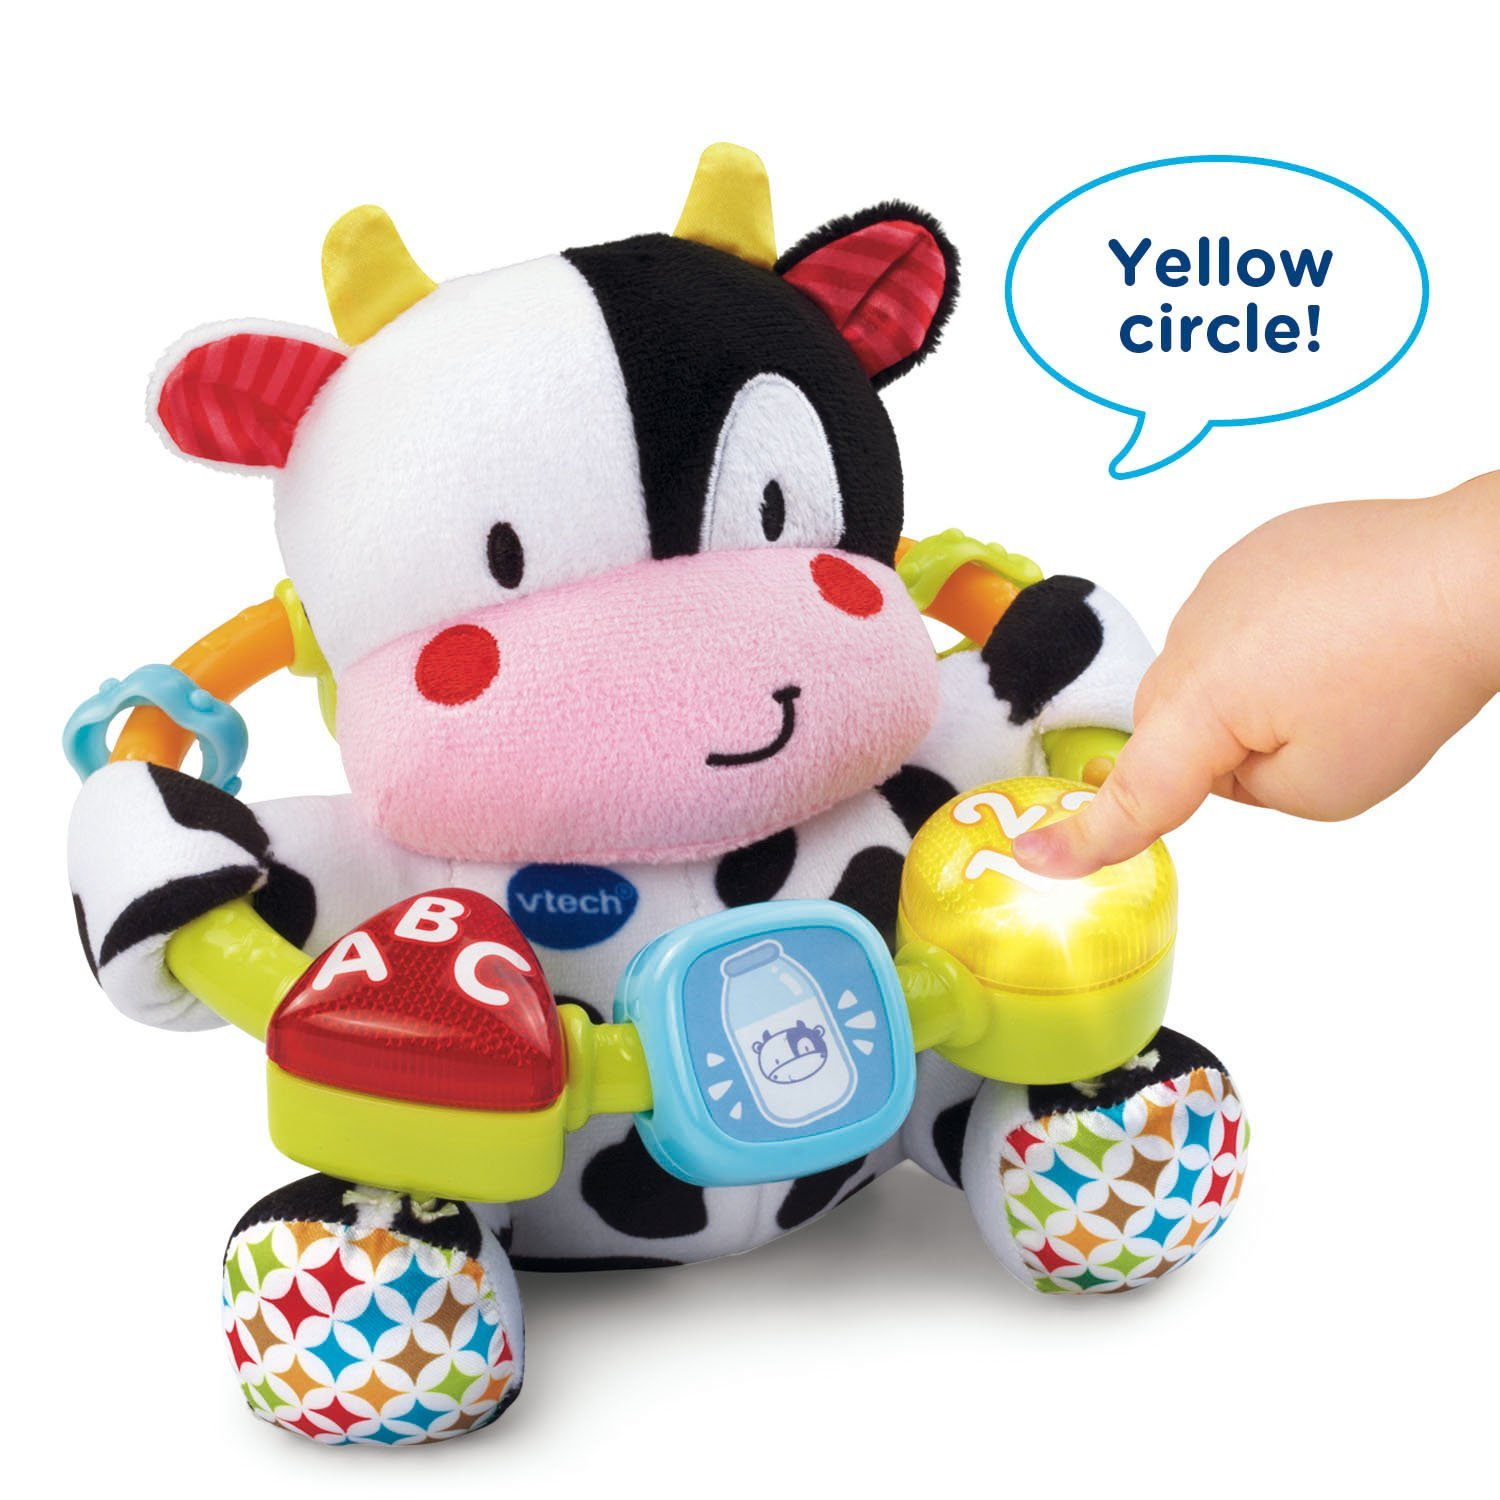 VTech Baby Lil' Critters Moosical Beads, 30+ playful songs, ( Musical stuffed animal )... by VTech